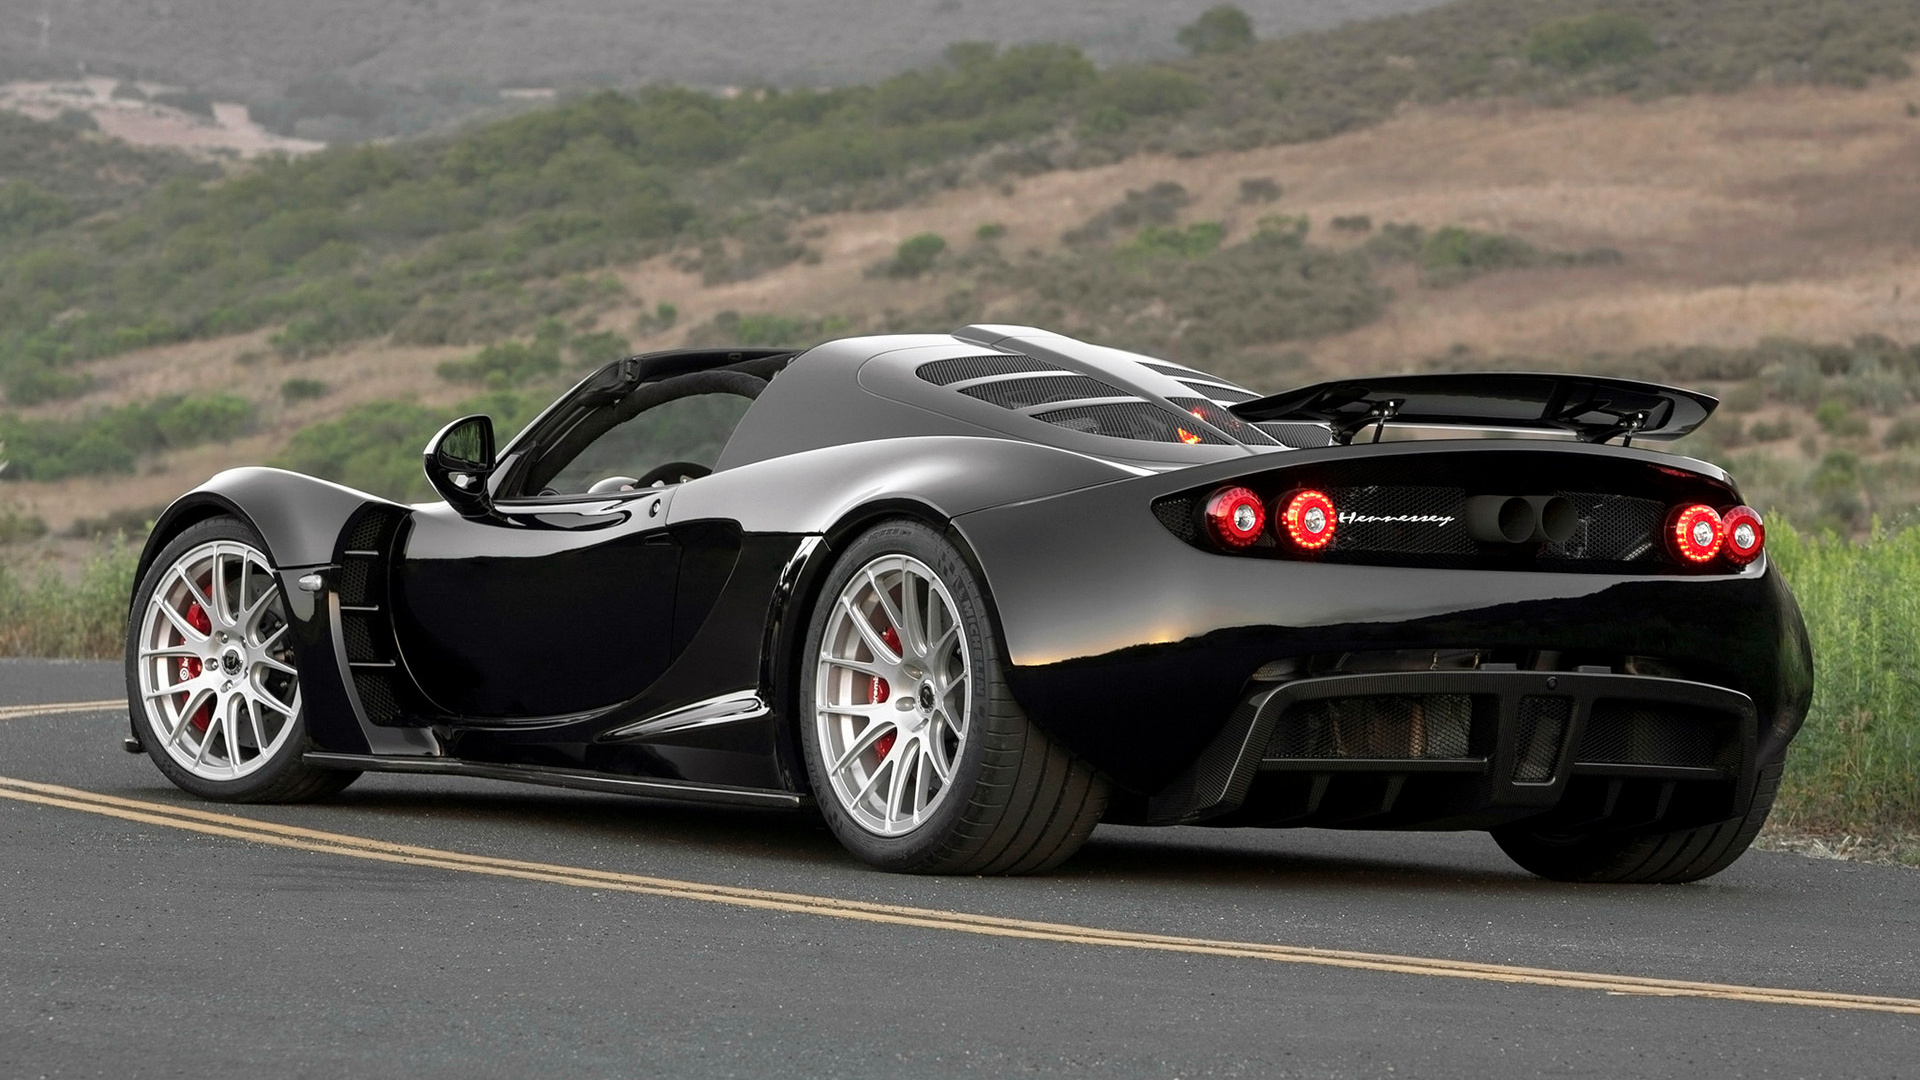 Hennessey Venom Gt Spyder 2013 Wallpapers And Hd Images